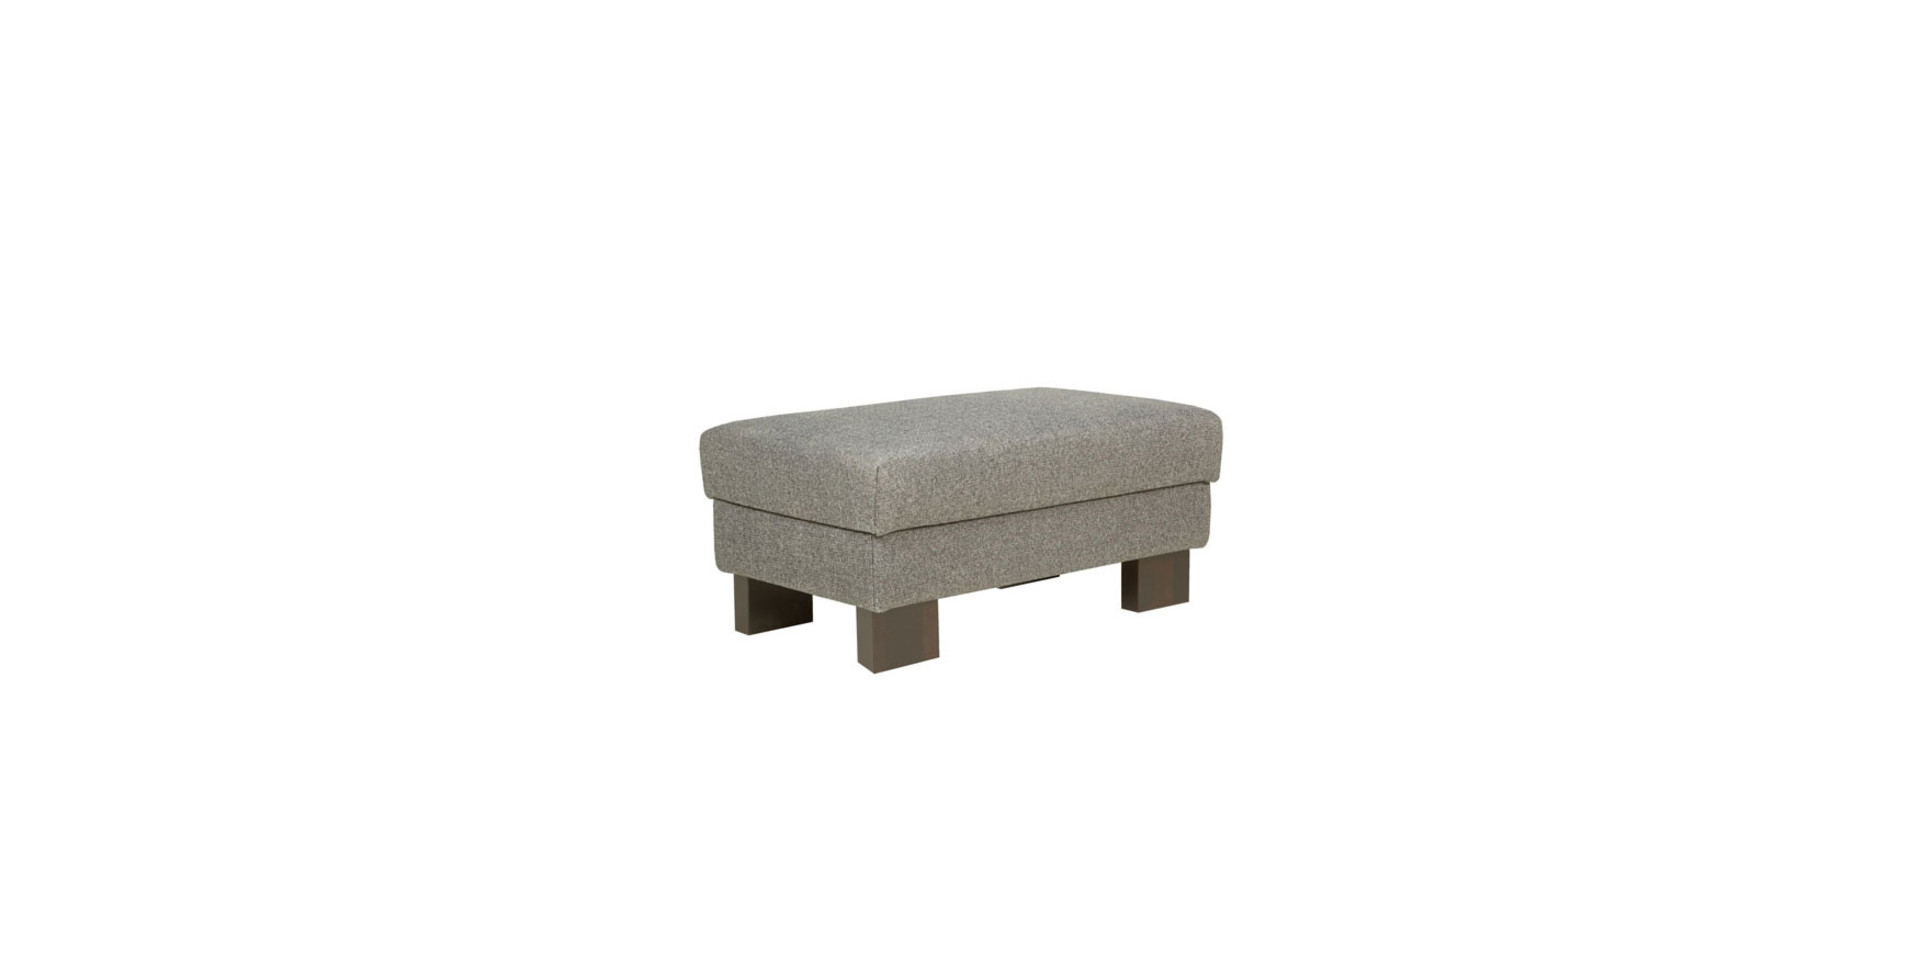 sits-quattro-pouf-footstool_origin53_dark_grey_2_0